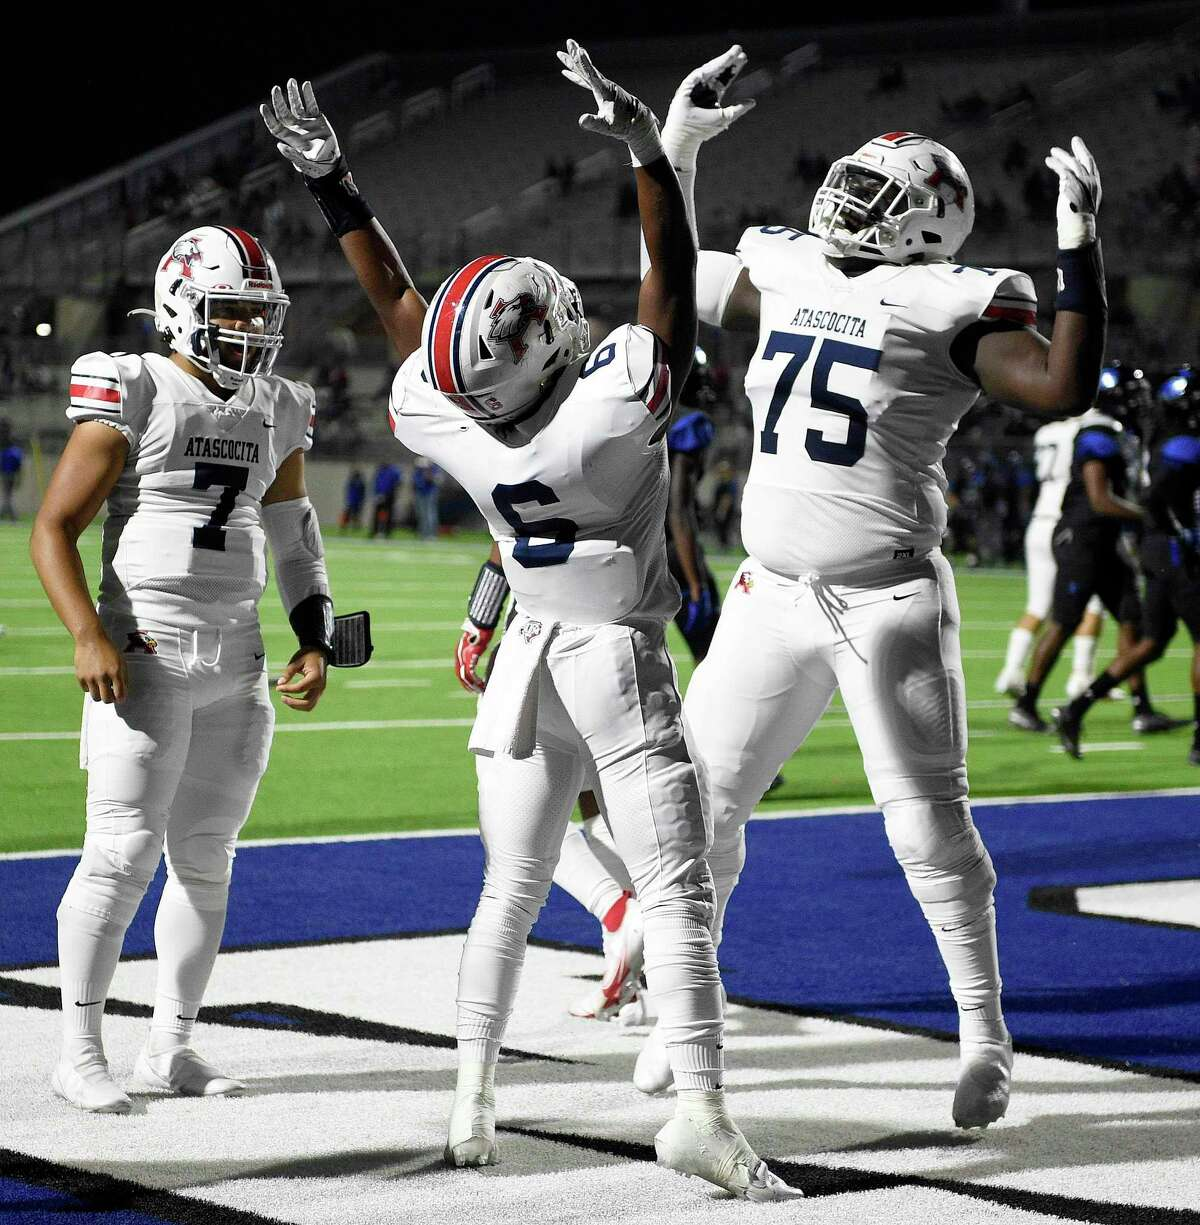 Atascocita running back Tyras Winfield (6) celebrates his touchdown with Kameron Dewberry (75) and Gavin Session (7) during the first half of a high school football game against CE King, Friday, Nov. 13, 2020, in Houston.